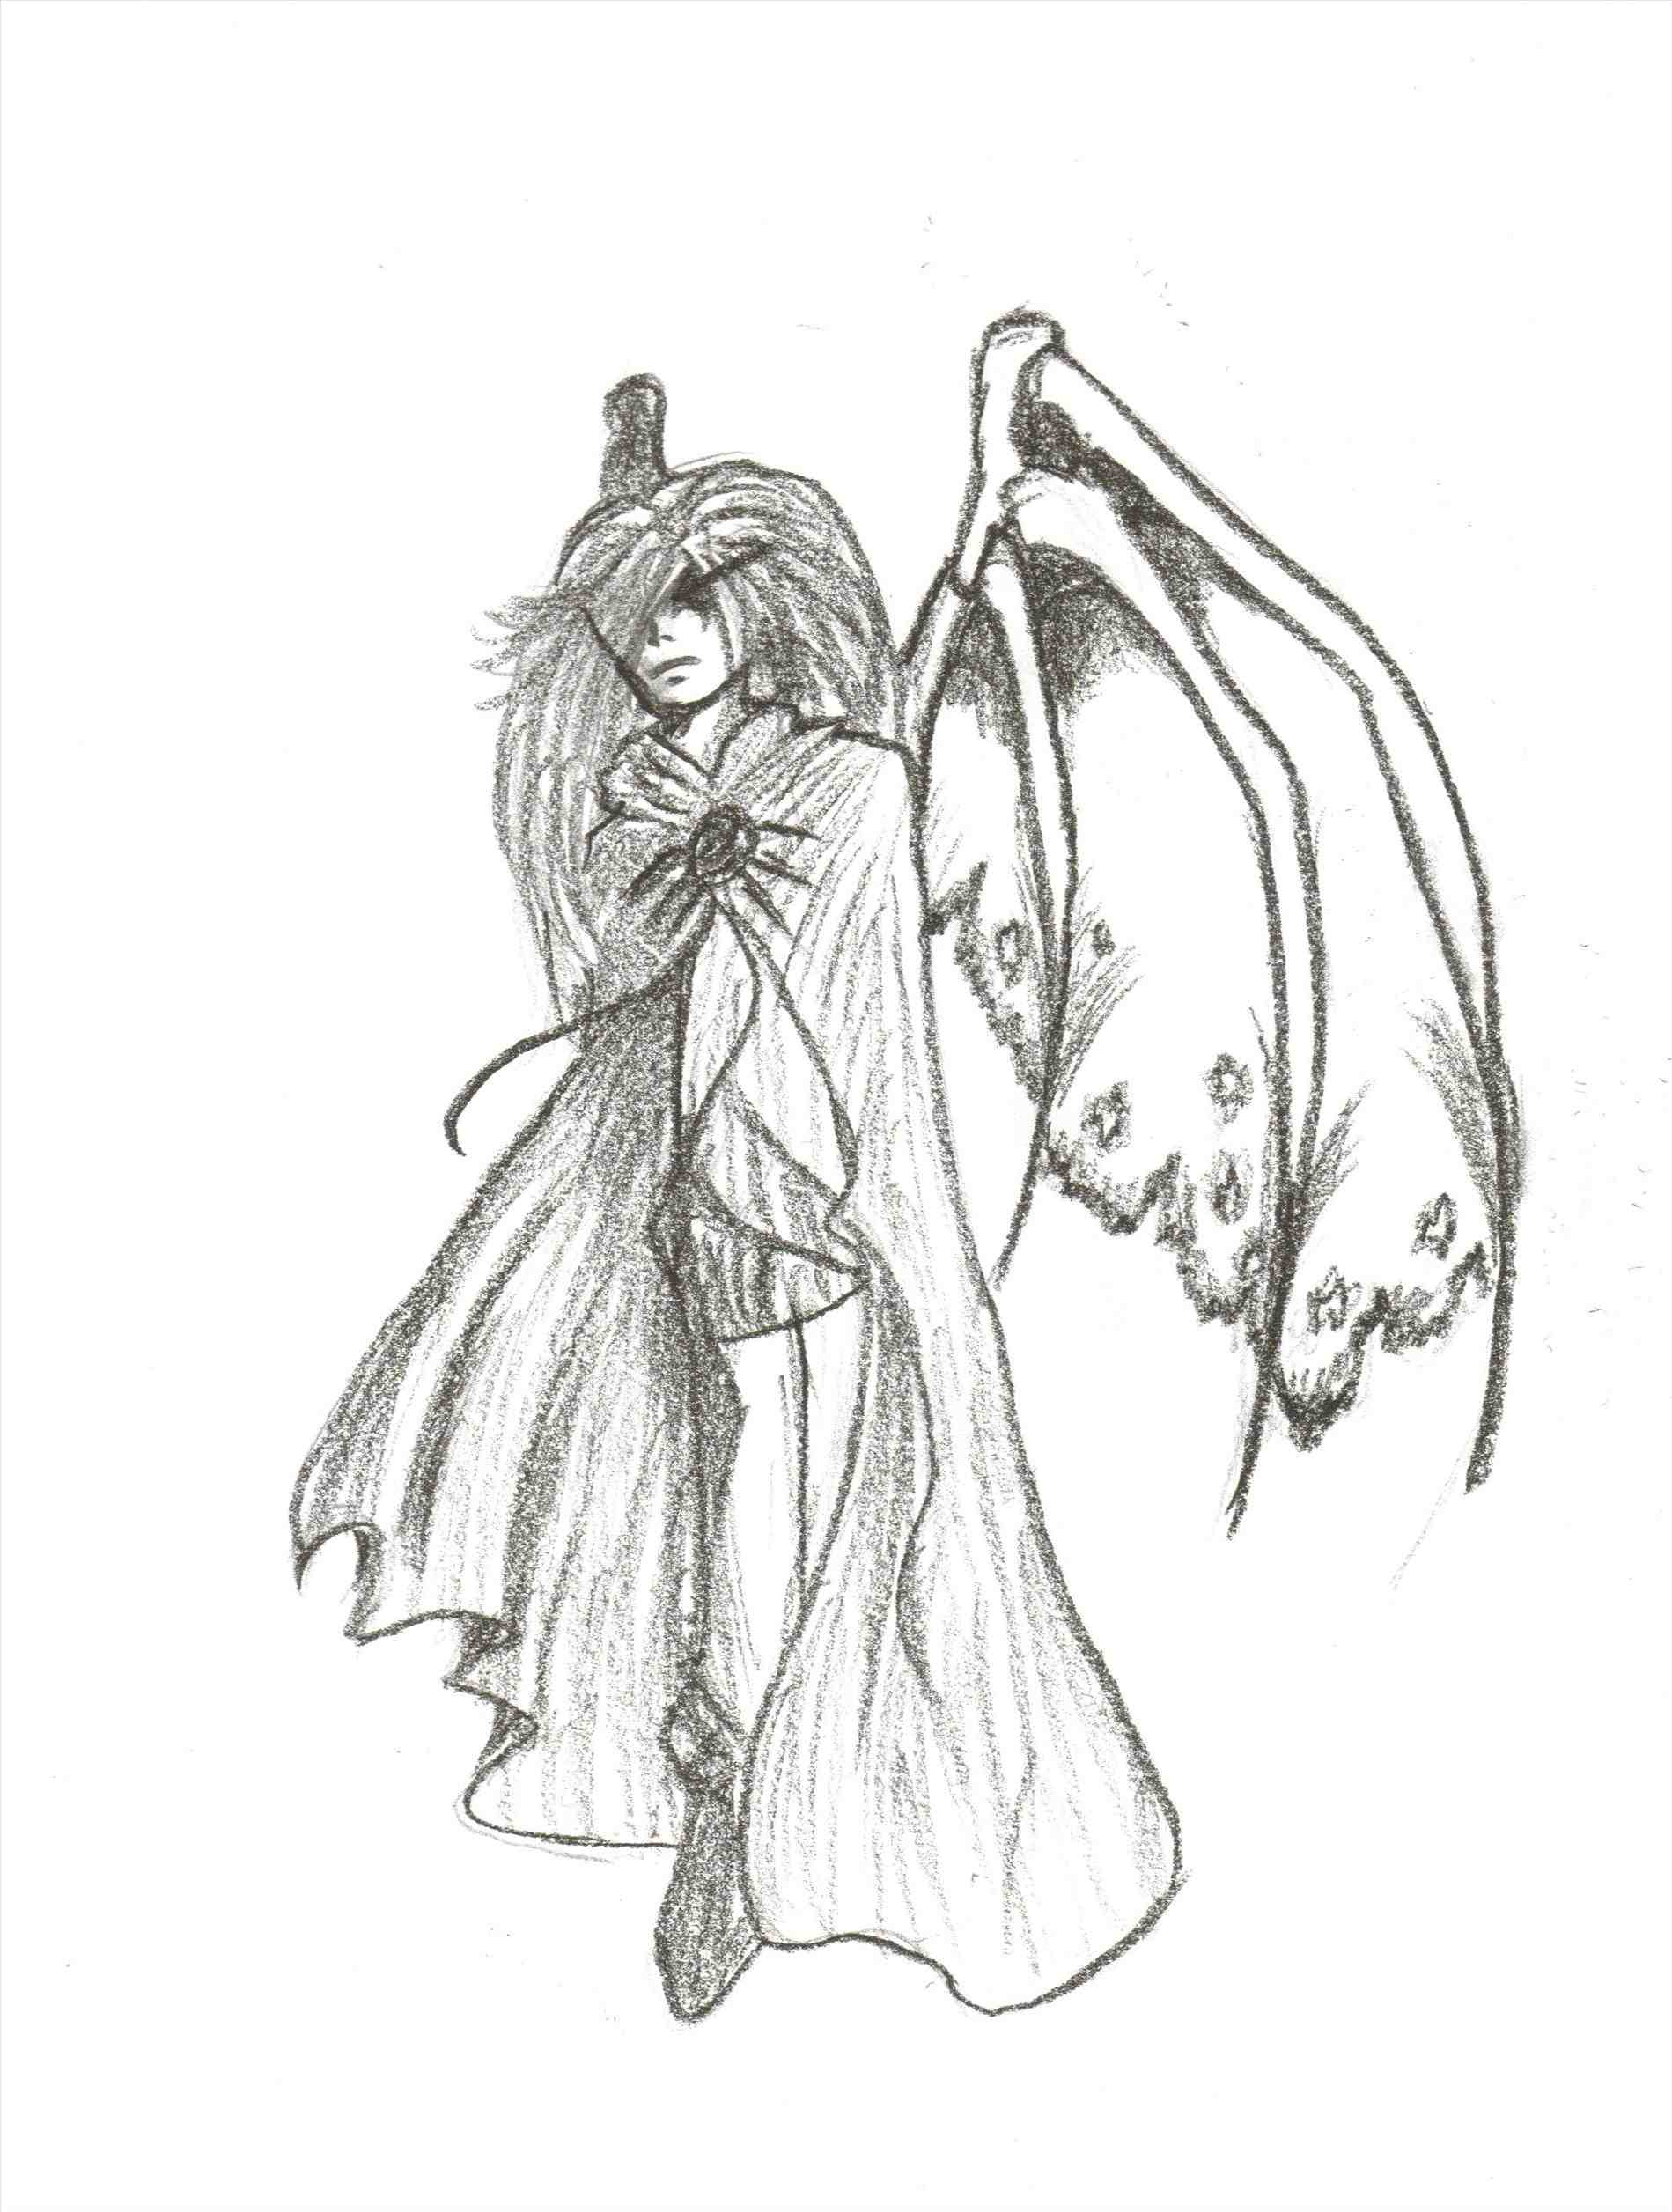 1899x2512 Art Angel Heart With Wings Drawings In Pencil Halo Dra Free